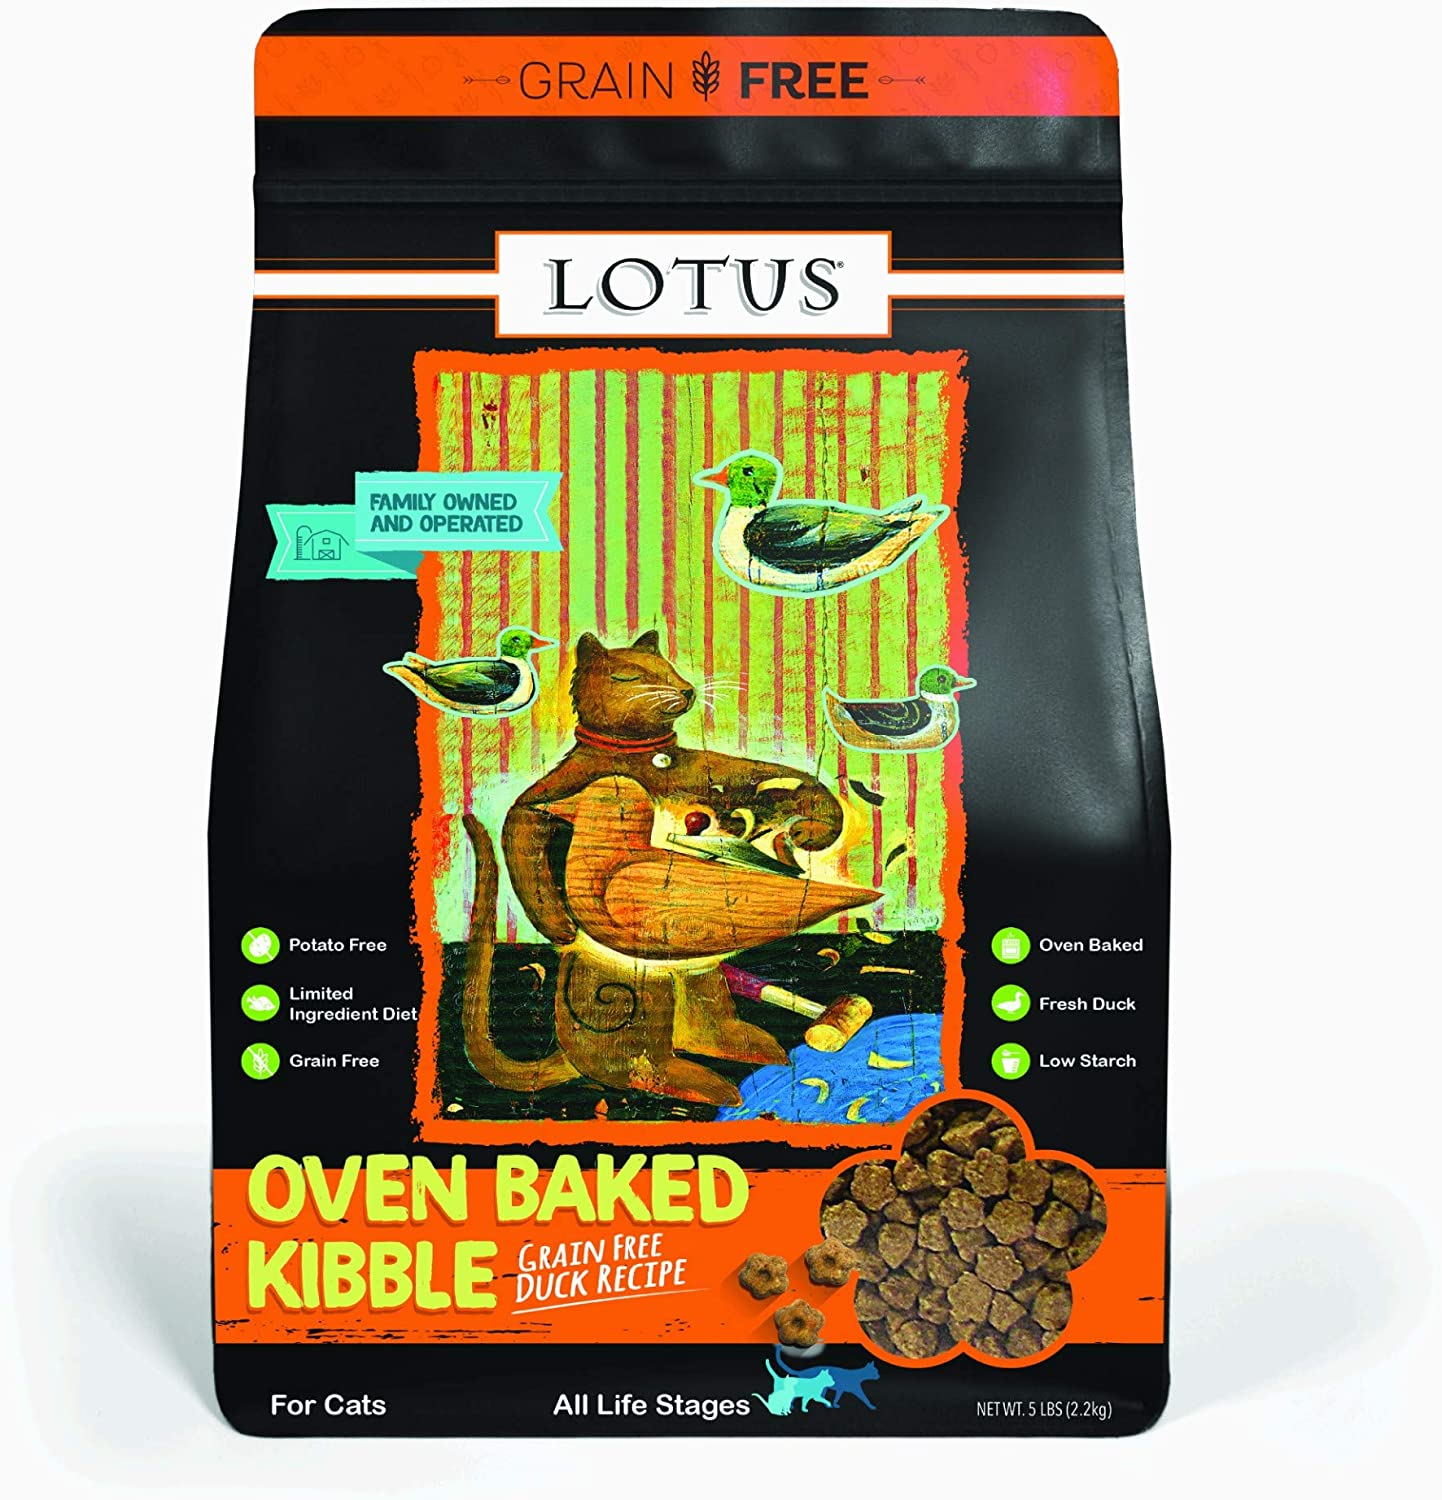 Lotus Grain-Free Oven Baked Duck Adult Cat Dry Food Recipe 5 Pounds